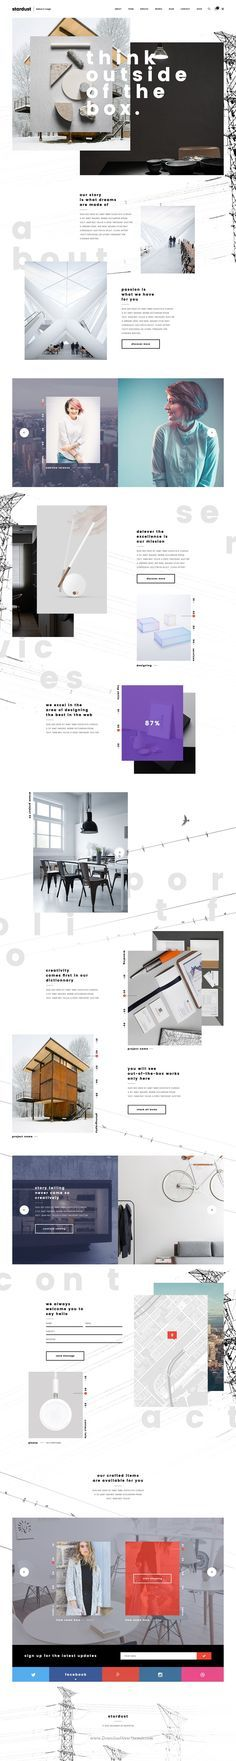 """stardust is a Professionally designed Out-of-the-Box Creative PSD <a class=""""pintag searchlink"""" data-query=""""%23Template"""" data-type=""""hashtag"""" href=""""/search/?q=%23Template&rs=hashtag"""" rel=""""nofollow"""" title=""""#Template search Pinterest"""">#Template</a> for classy Portfolio Sites or Creative <a class=""""pintag searchlink"""" data-query=""""%23Agency"""" data-type=""""hashtag"""" href=""""/search/?q=%23Agency&rs=hashtag"""" rel=""""nofollow"""" title=""""#Agency search Pinterest"""">#Agency</a> <a class=""""pintag searchlink""""…"""